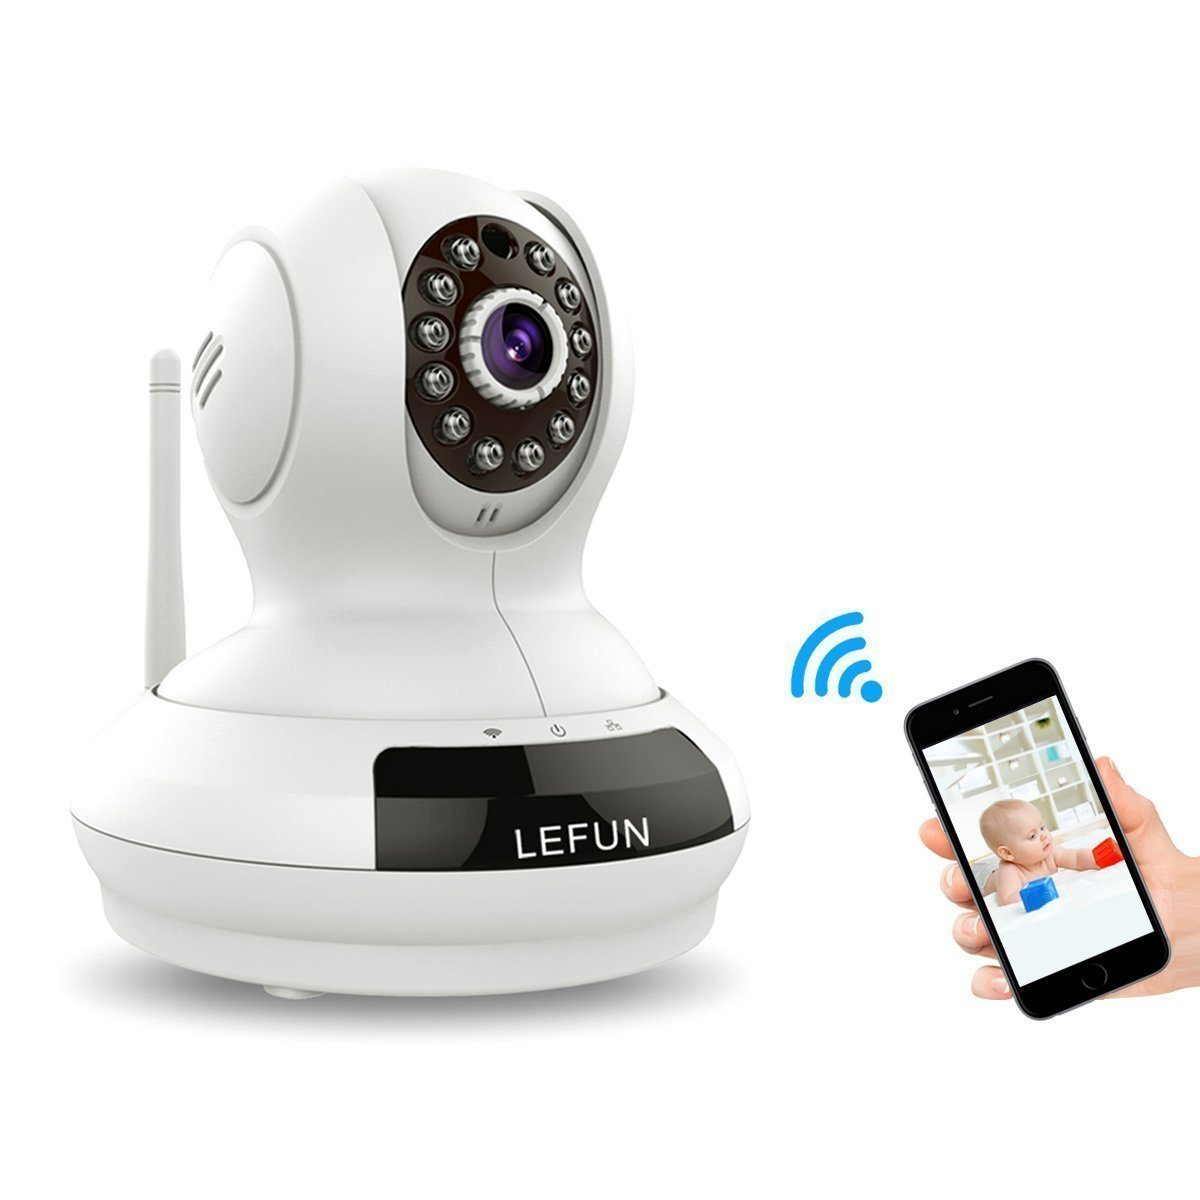 LeFun Security Camera